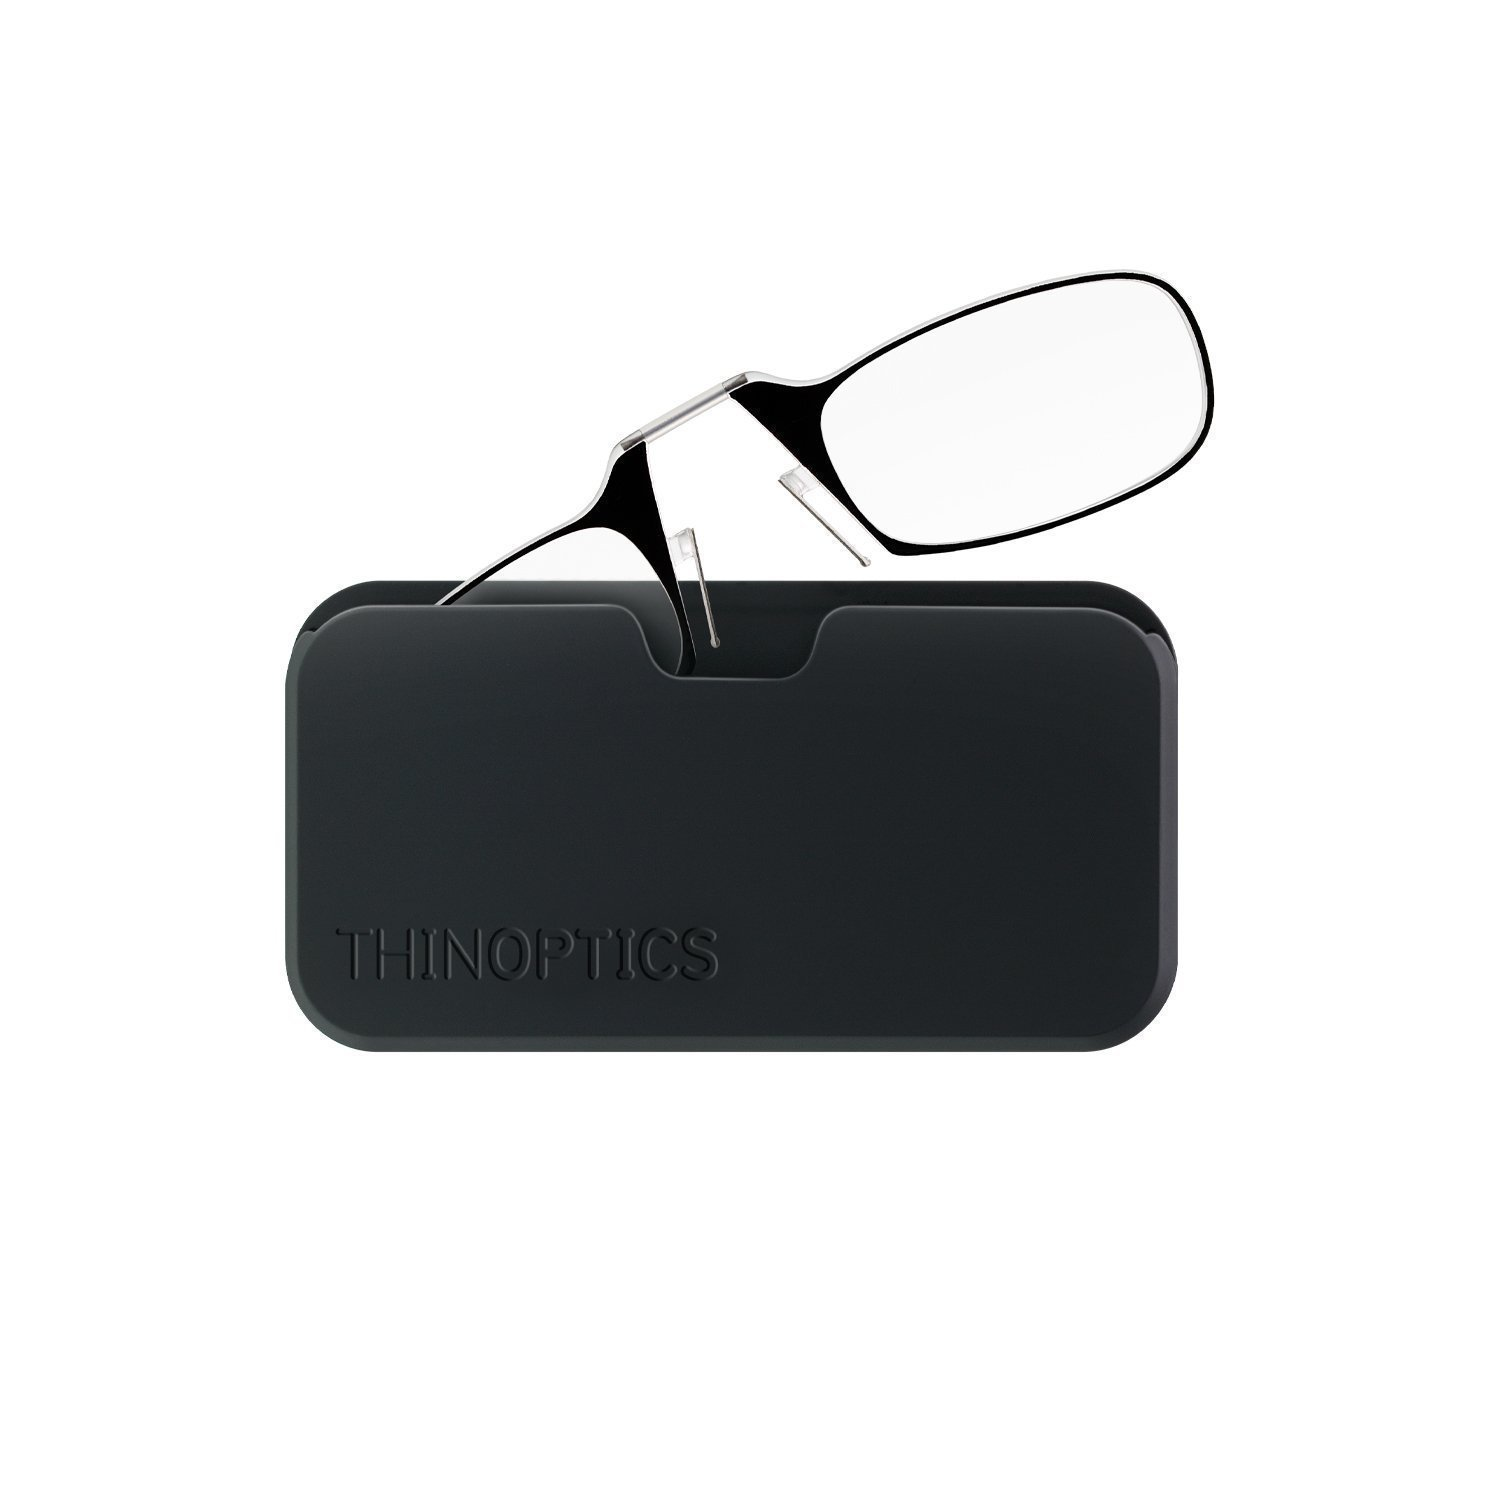 ThinOPTICS Reading Glasses + Black Universal Pod Case | Classic Collection, Black Frames, 2.00 Strength, Lifetime Guarantee UPBMB